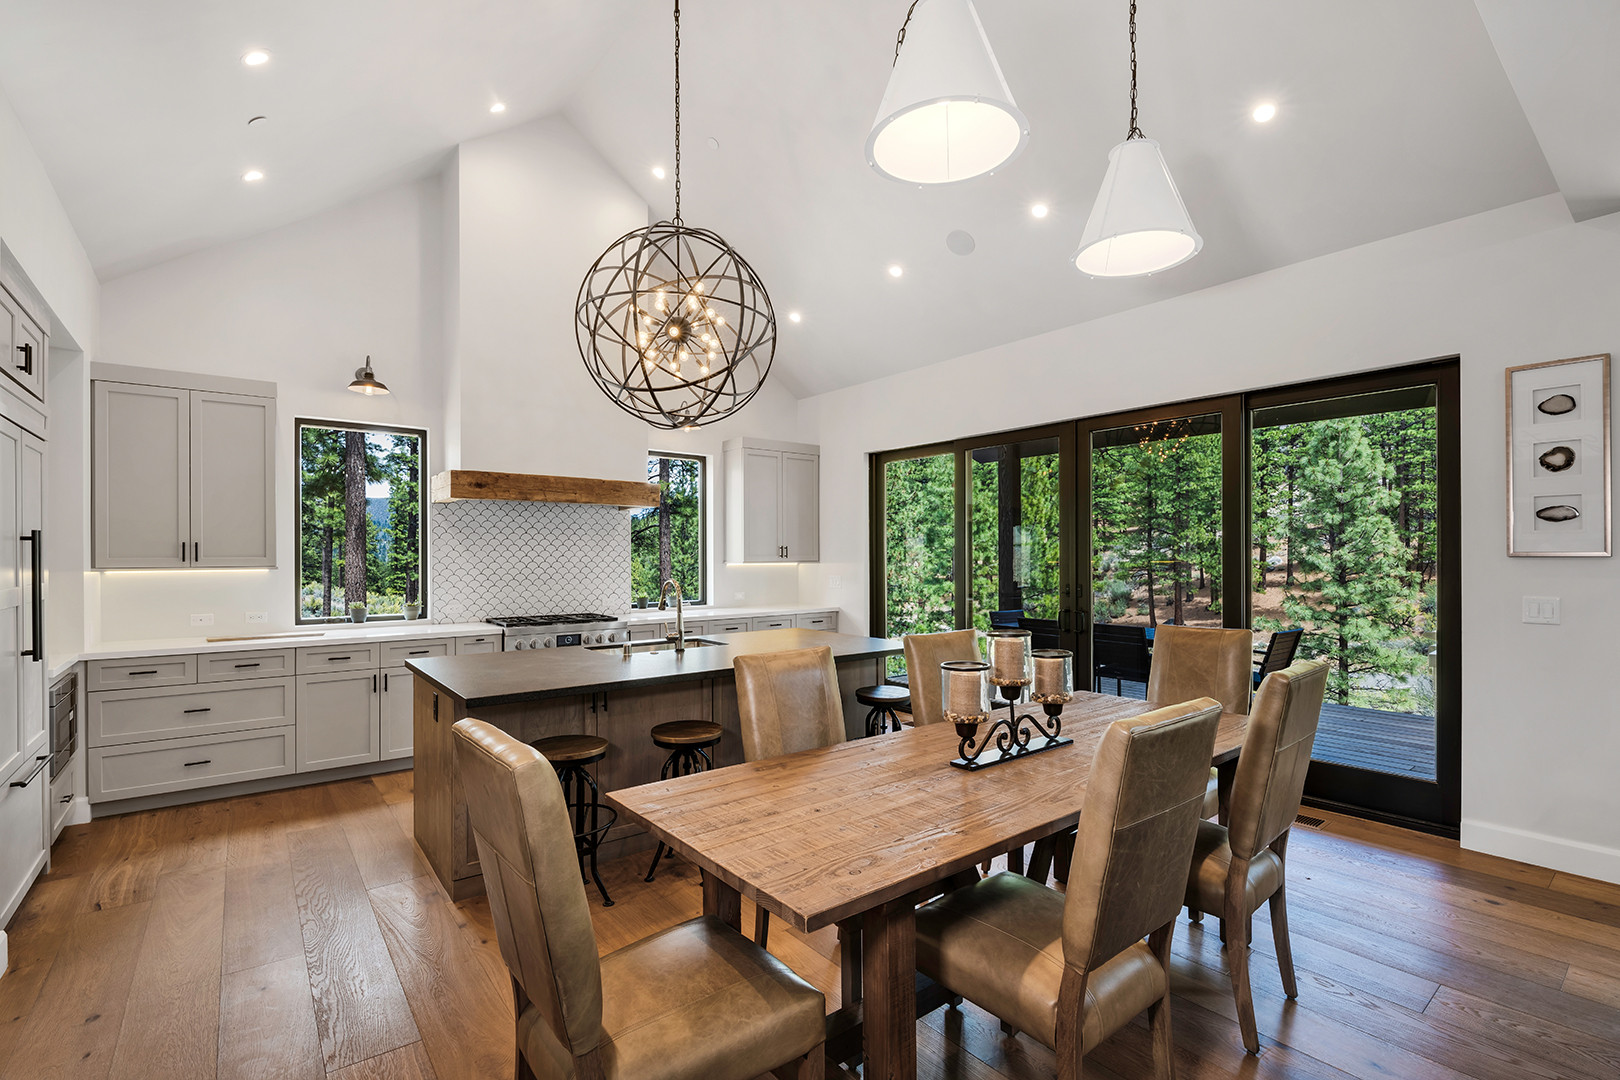 Dining Table and kitchen.jpg